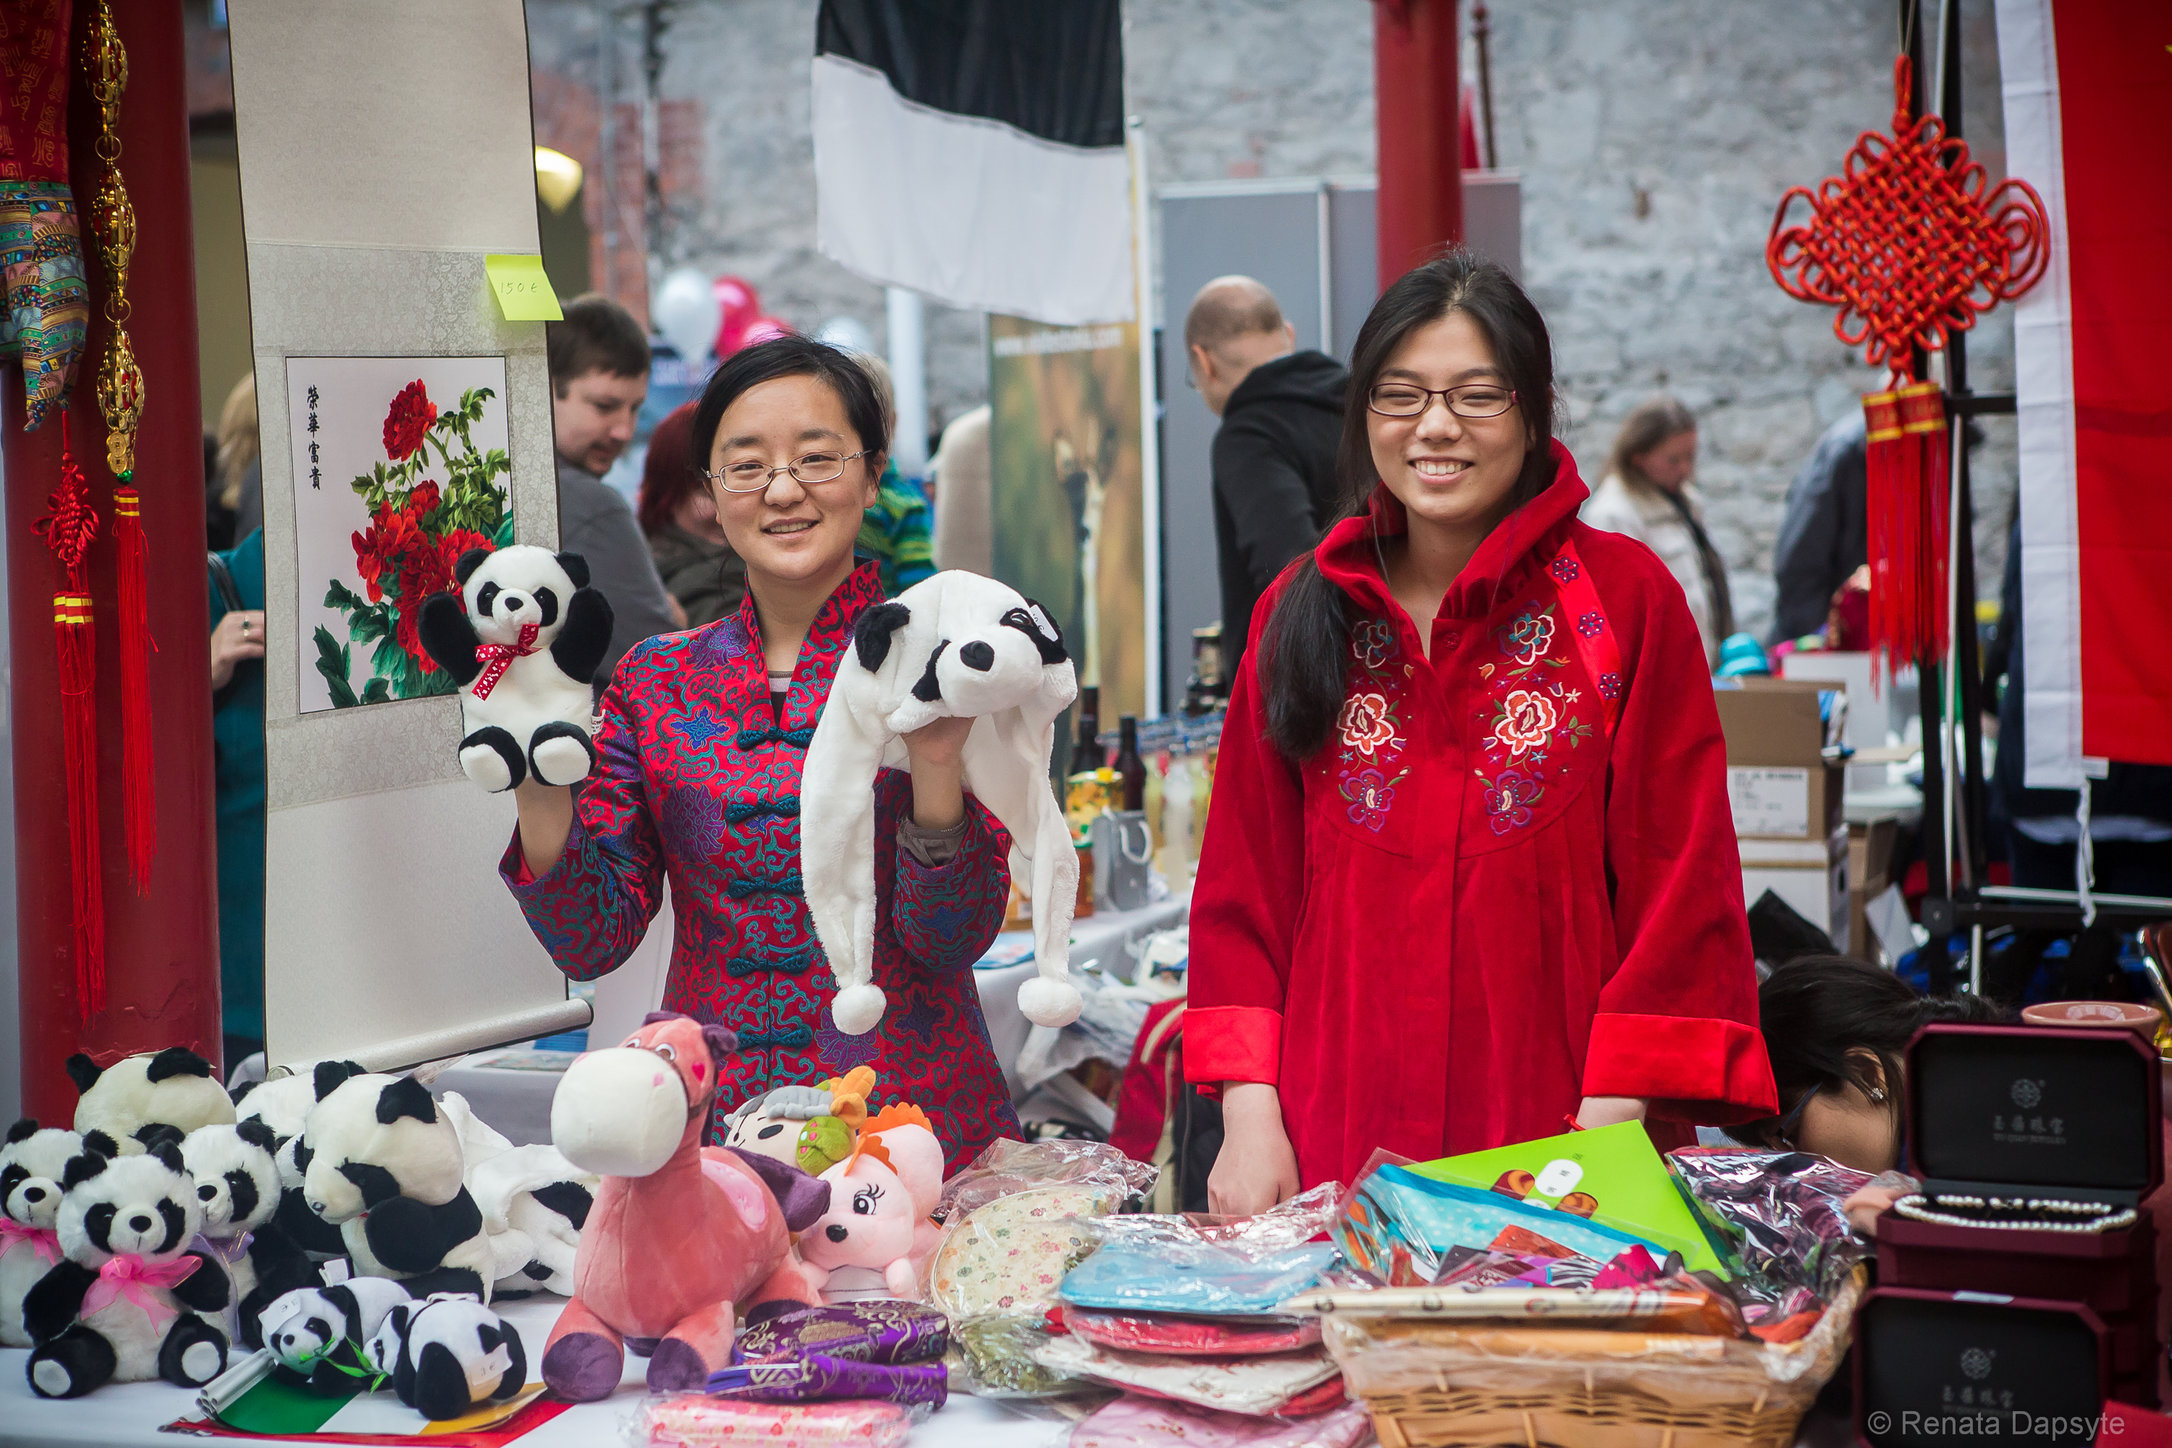 077_International Charity Bazaar Dublin 2013.JPG